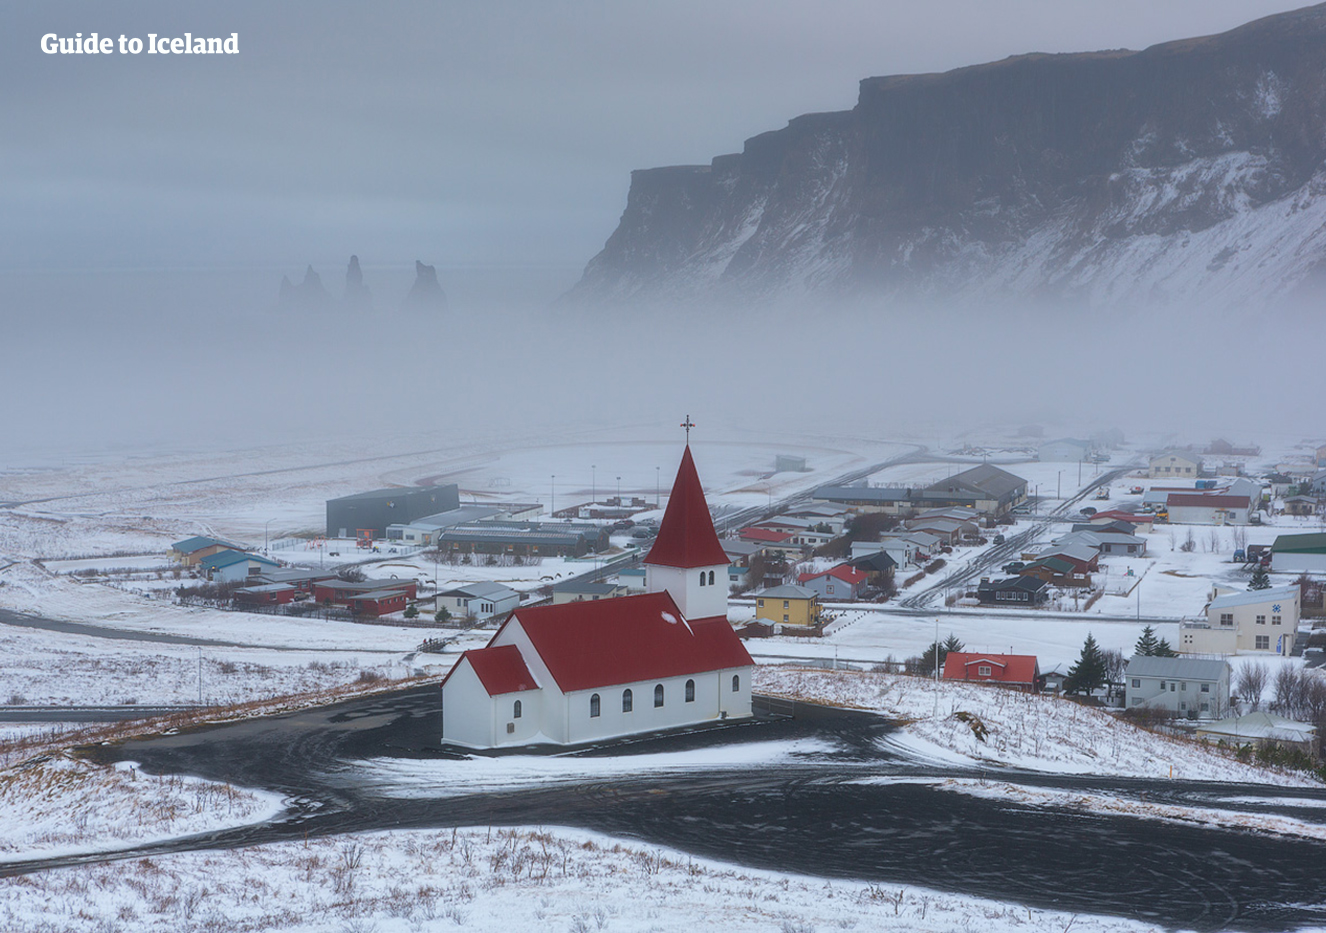 The fishing town of Vik is a popular destination on the south coast of Iceland. You can wait for the Northern Lights at night.